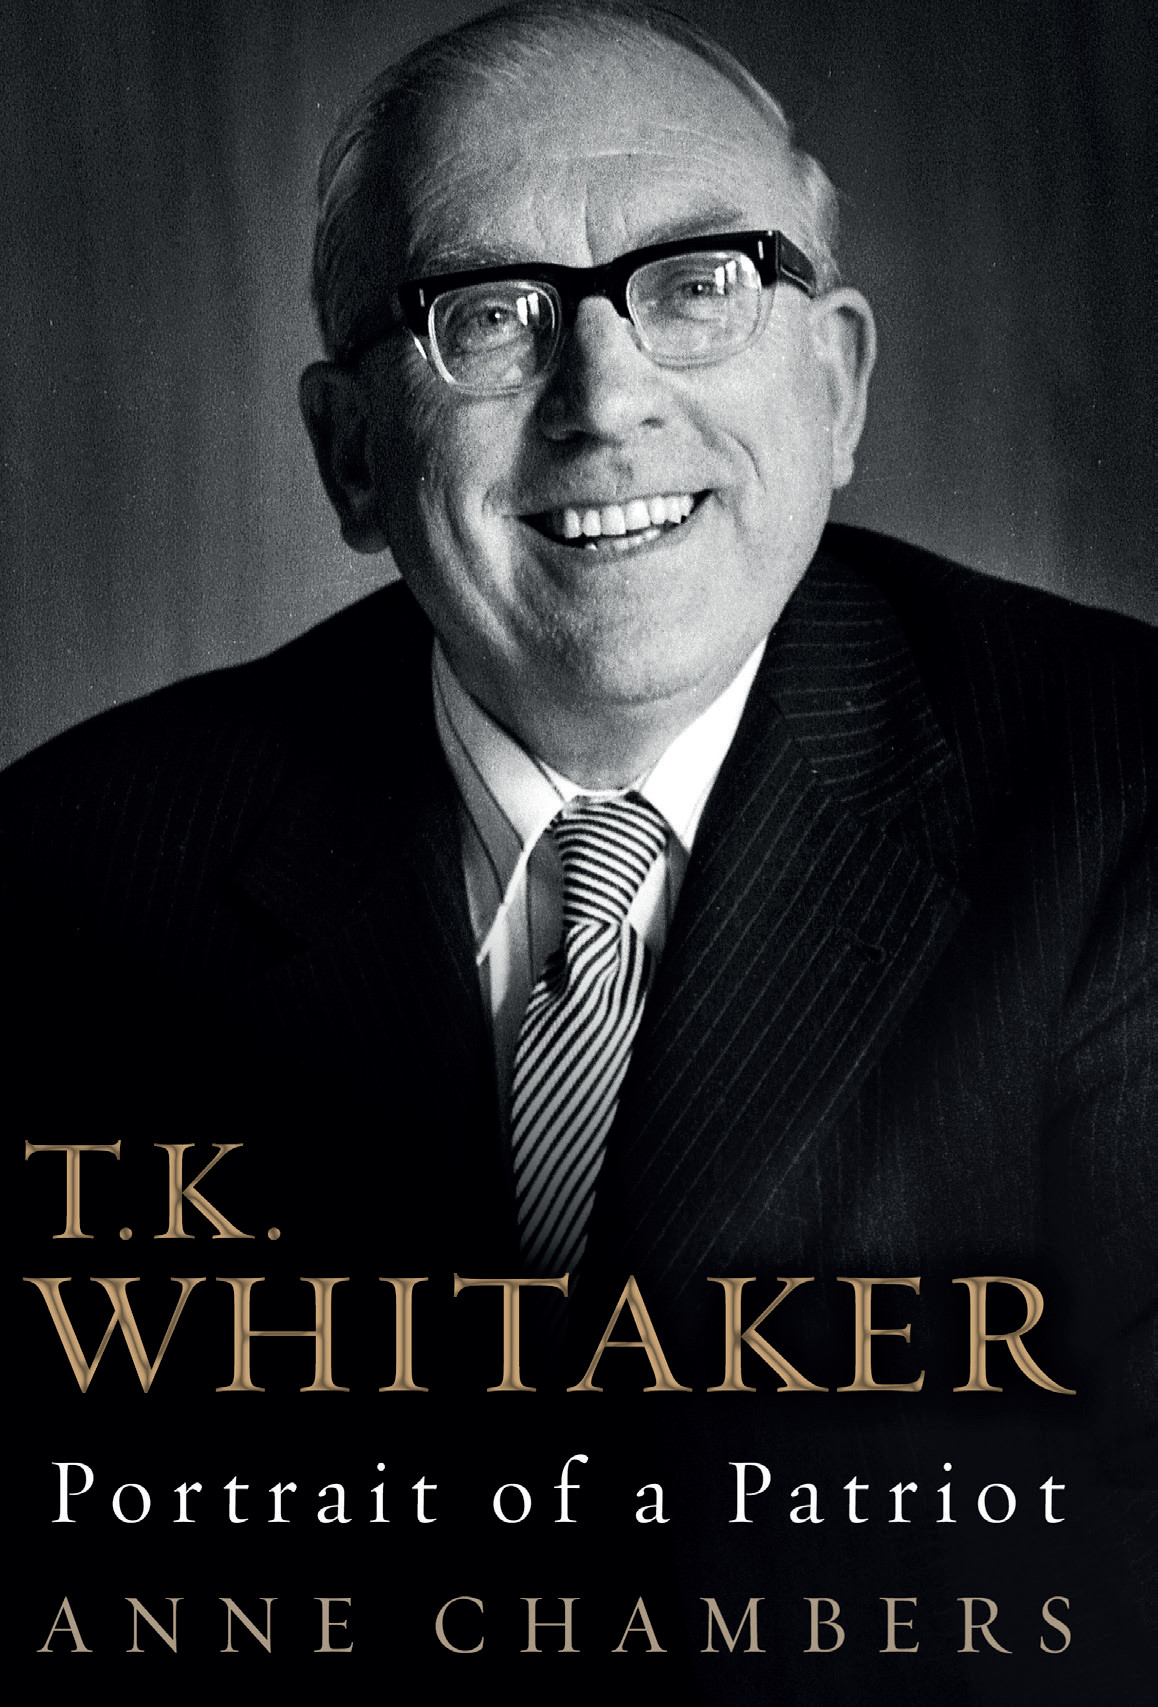 TK Whitaker Portrait of a Patriot